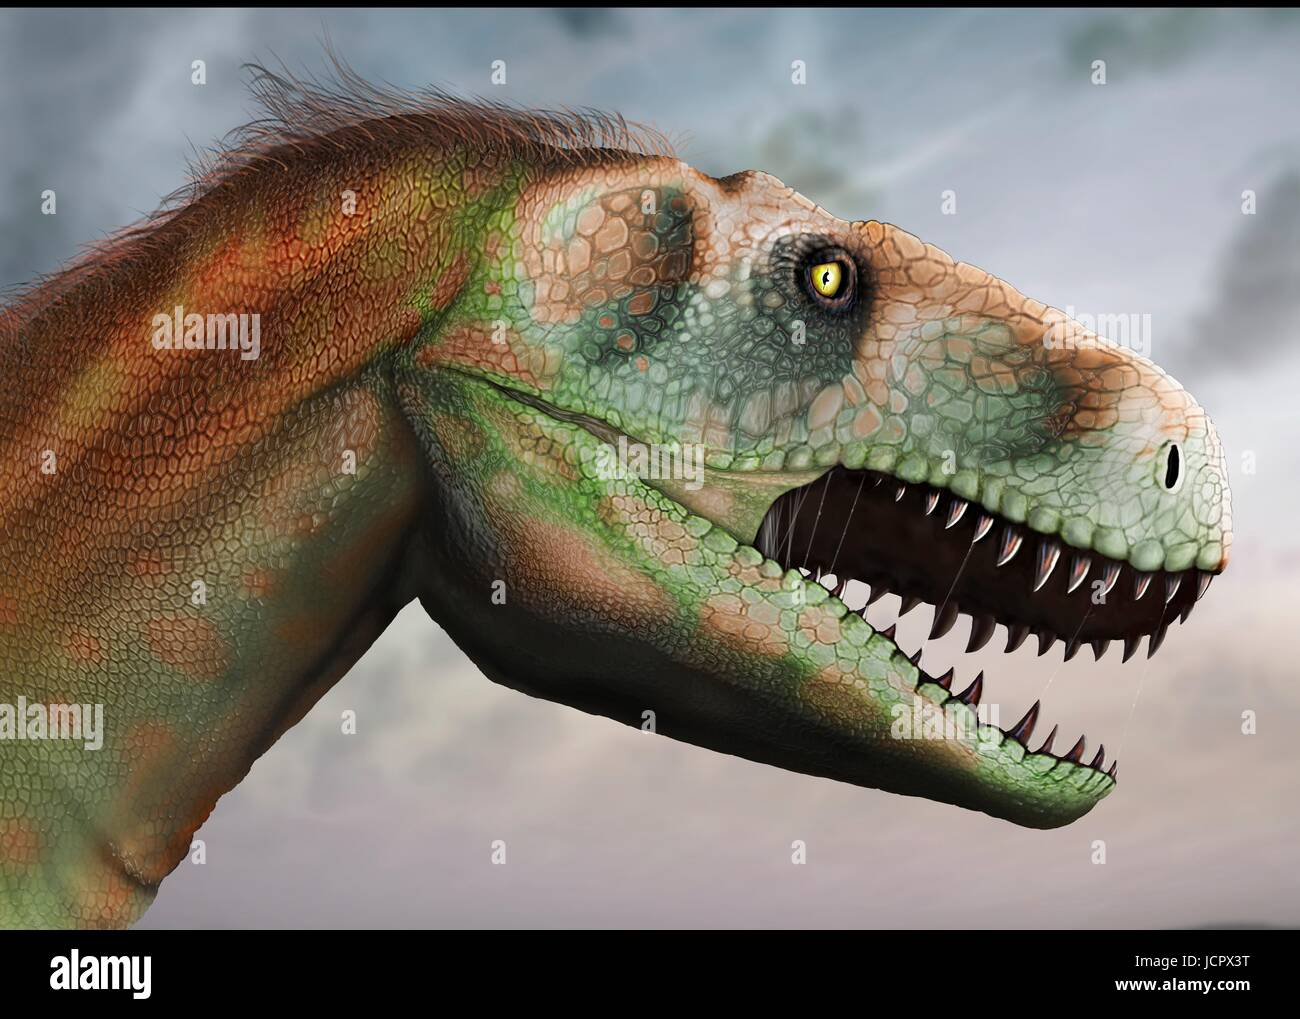 Head study megalosaurus.Megalosaurus is genus extinct meat-eating dinosaurs,theropods,from Middle Jurassic period - Stock Image